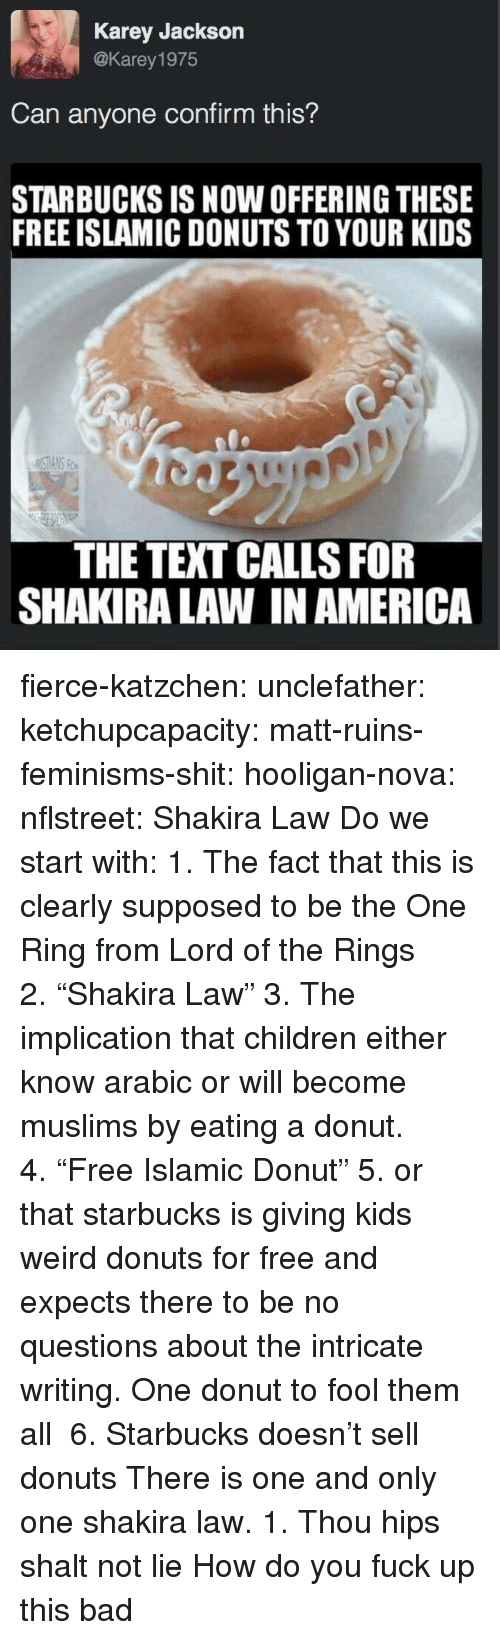 """shalt: Karey Jackson  @Karey 1975  Can anyone confirm this?  STARBUCKS IS NOW OFFERING THESE  FREE ISLAMIC DONUTS TO YOUR KIDS  THE TEXT CALLS FOR  SHAKIRA LAW IN AMERICA fierce-katzchen:  unclefather:  ketchupcapacity:  matt-ruins-feminisms-shit:  hooligan-nova:  nflstreet: Shakira Law Do we start with: 1. The fact that this is clearly supposed to be the One Ring from Lord of the Rings 2.""""Shakira Law"""" 3. The implication that children either know arabic or will become muslims by eating a donut. 4.""""Free Islamic Donut"""" 5. or that starbucks is giving kids weird donuts for free and expects there to be no questions about the intricate writing.  One donut to fool them all   6. Starbucks doesn't sell donuts   There is one and only one shakira law. 1. Thou hips shalt not lie   How do you fuck up this bad"""